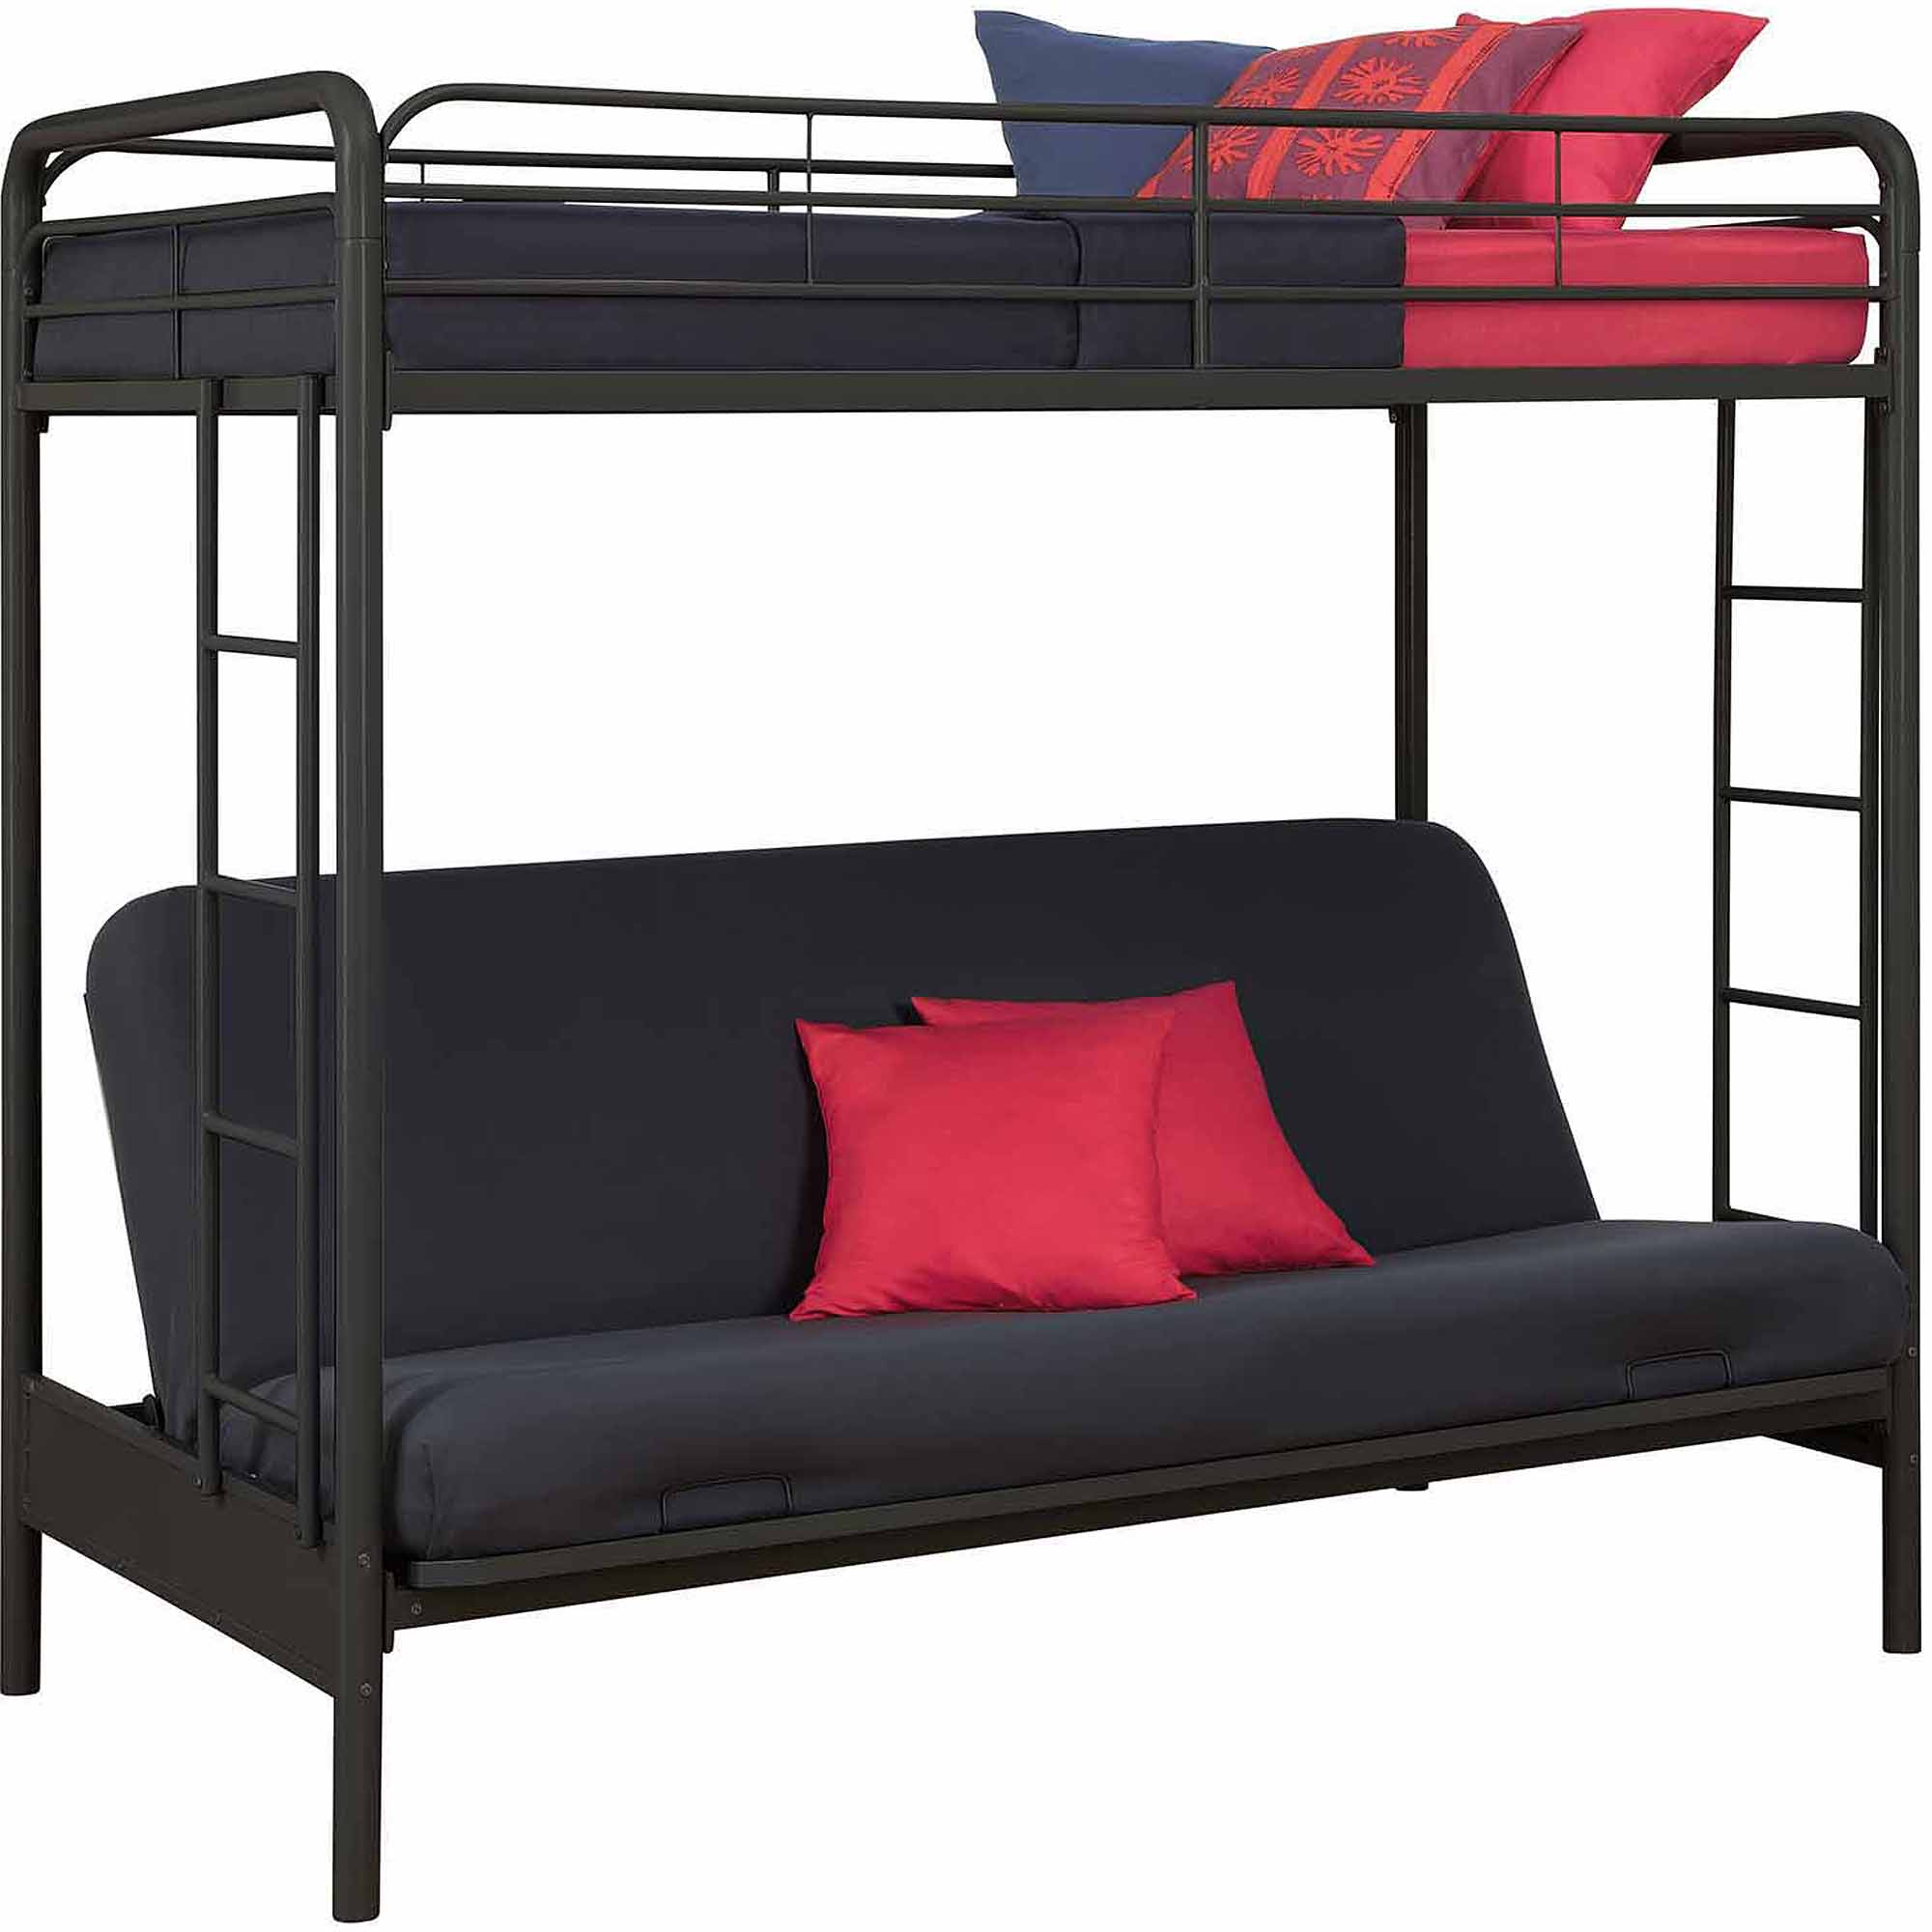 Metal bunk bed with slide - Metal Bunk Bed With Slide 18